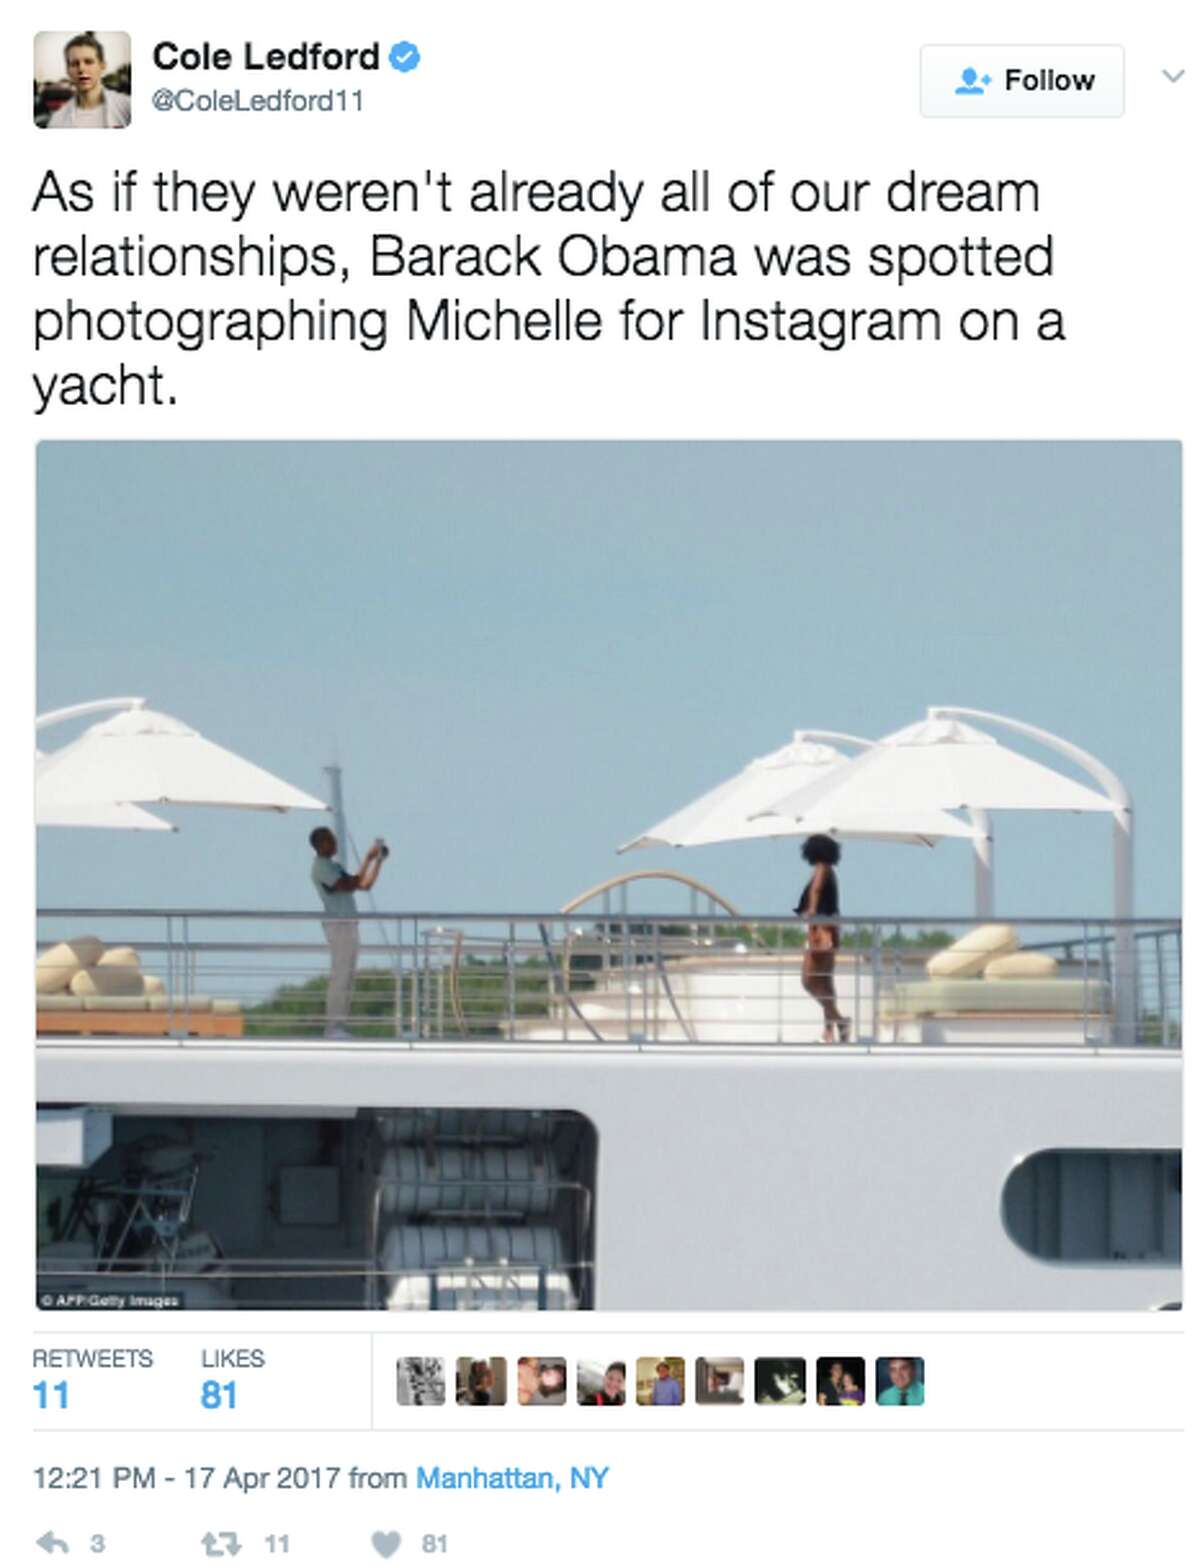 The Internet is going wild for a vacation photo of the Obamas onboard a yacht.